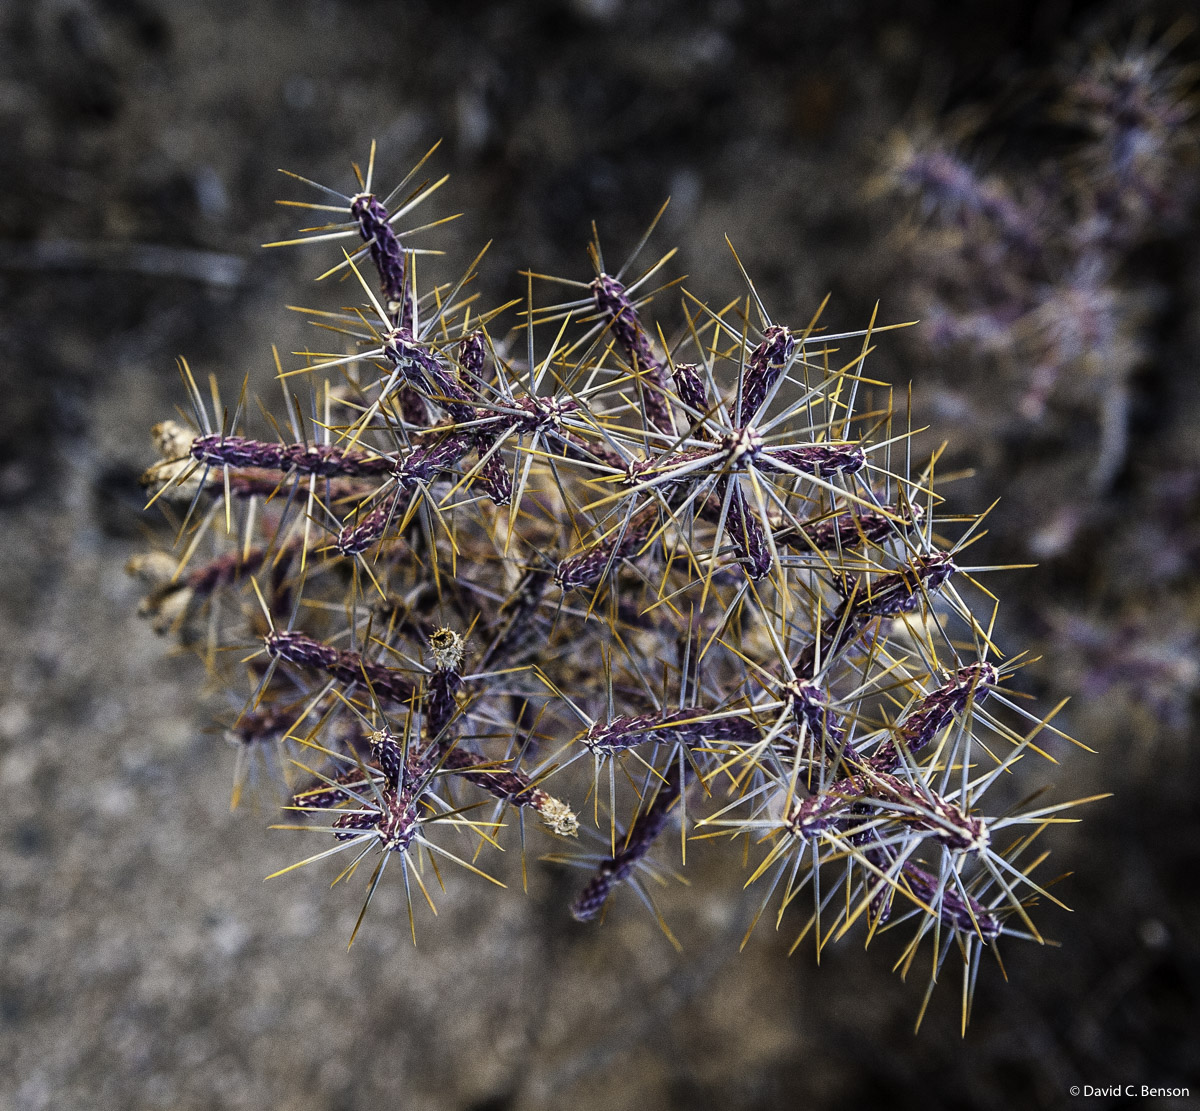 California, Joshua Tree National Park, Cactus, photo